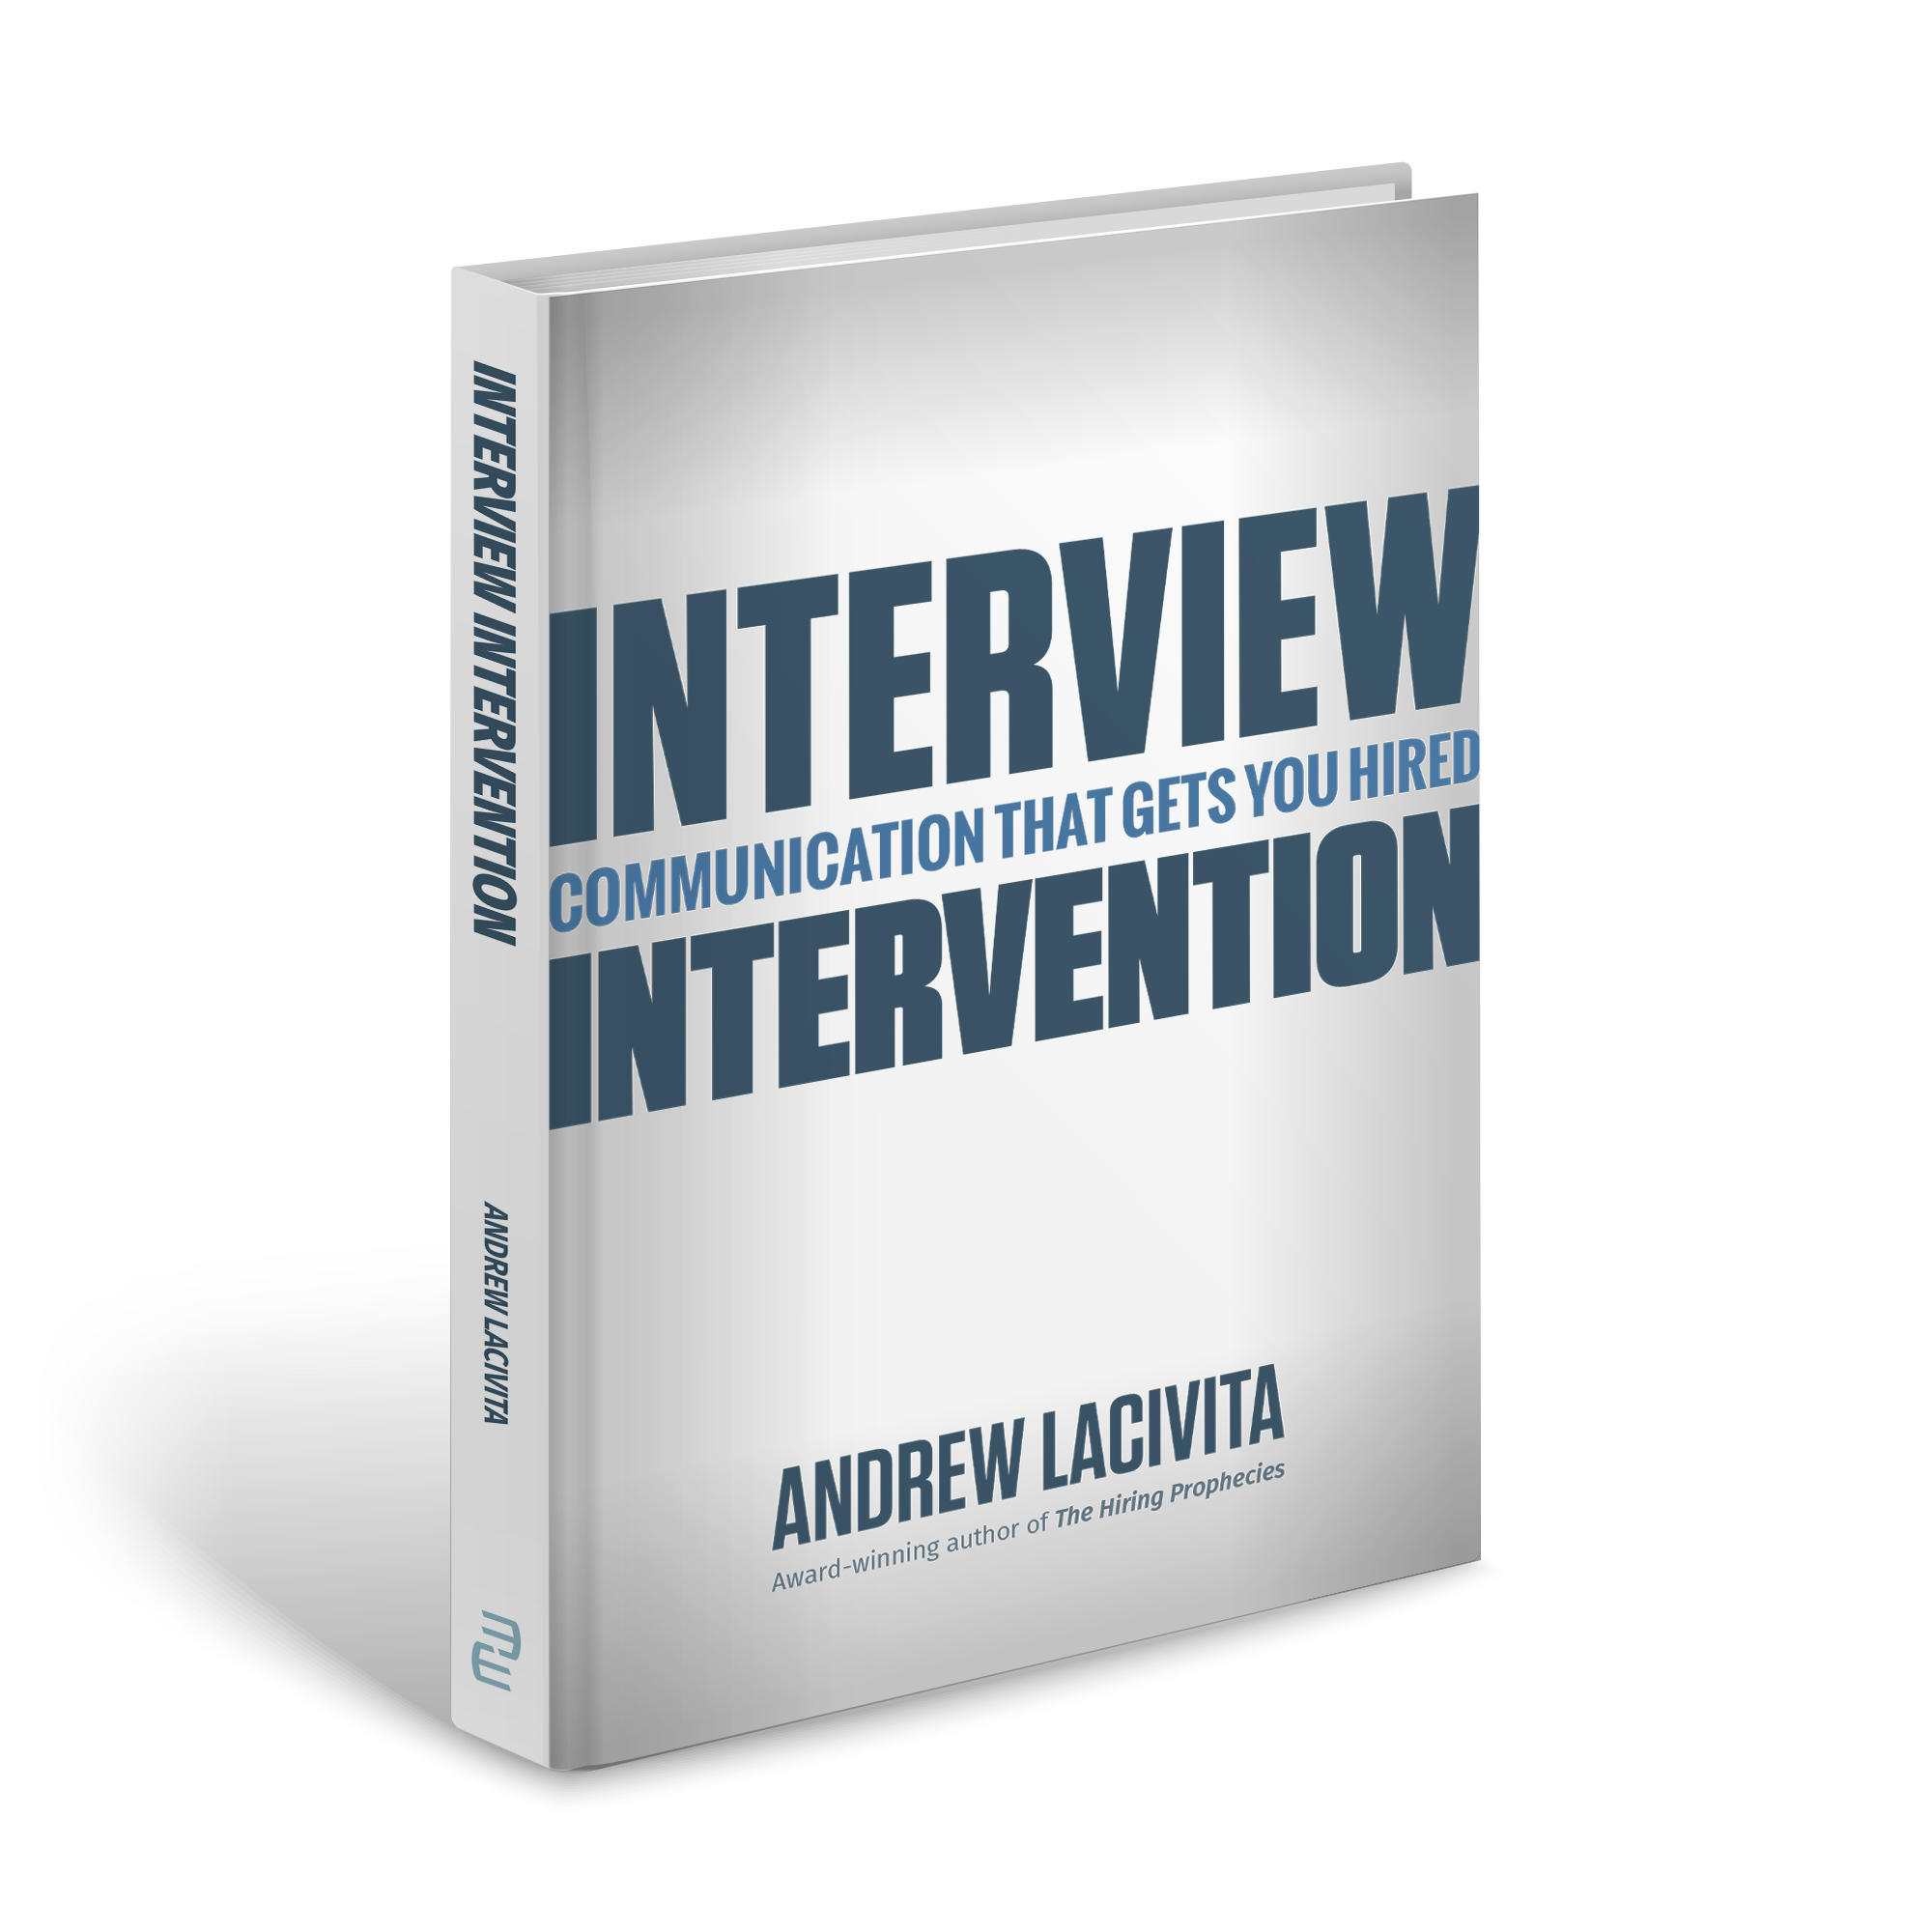 Training From Career U0026 Hiring Expert And Award Winning Author Andrew  LaCivita.